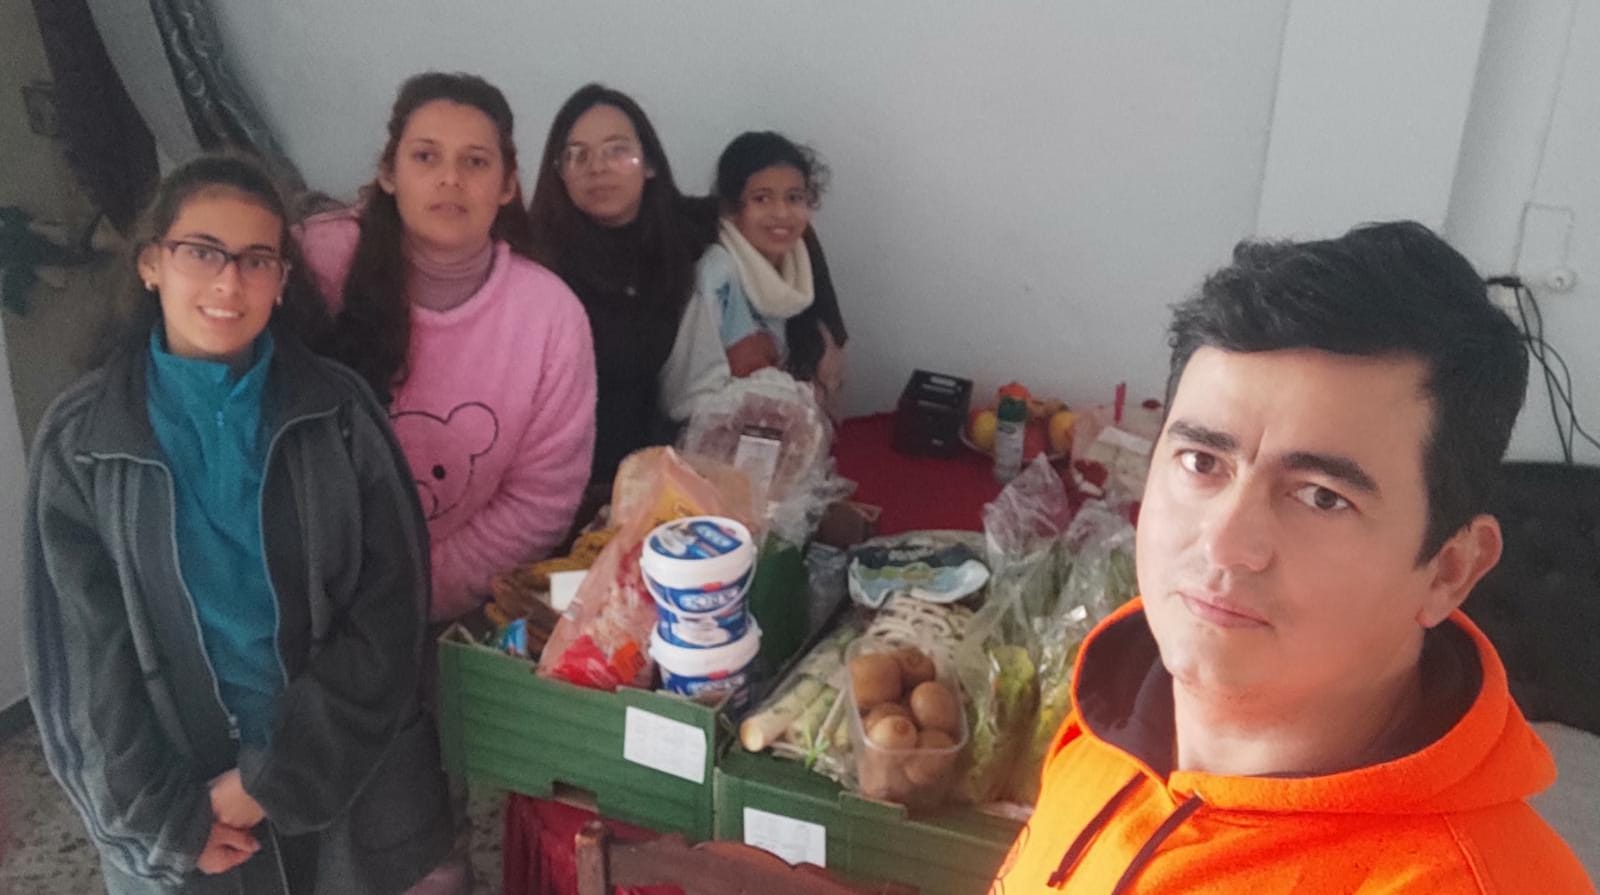 New Feeding program partnership in Málaga, Spain